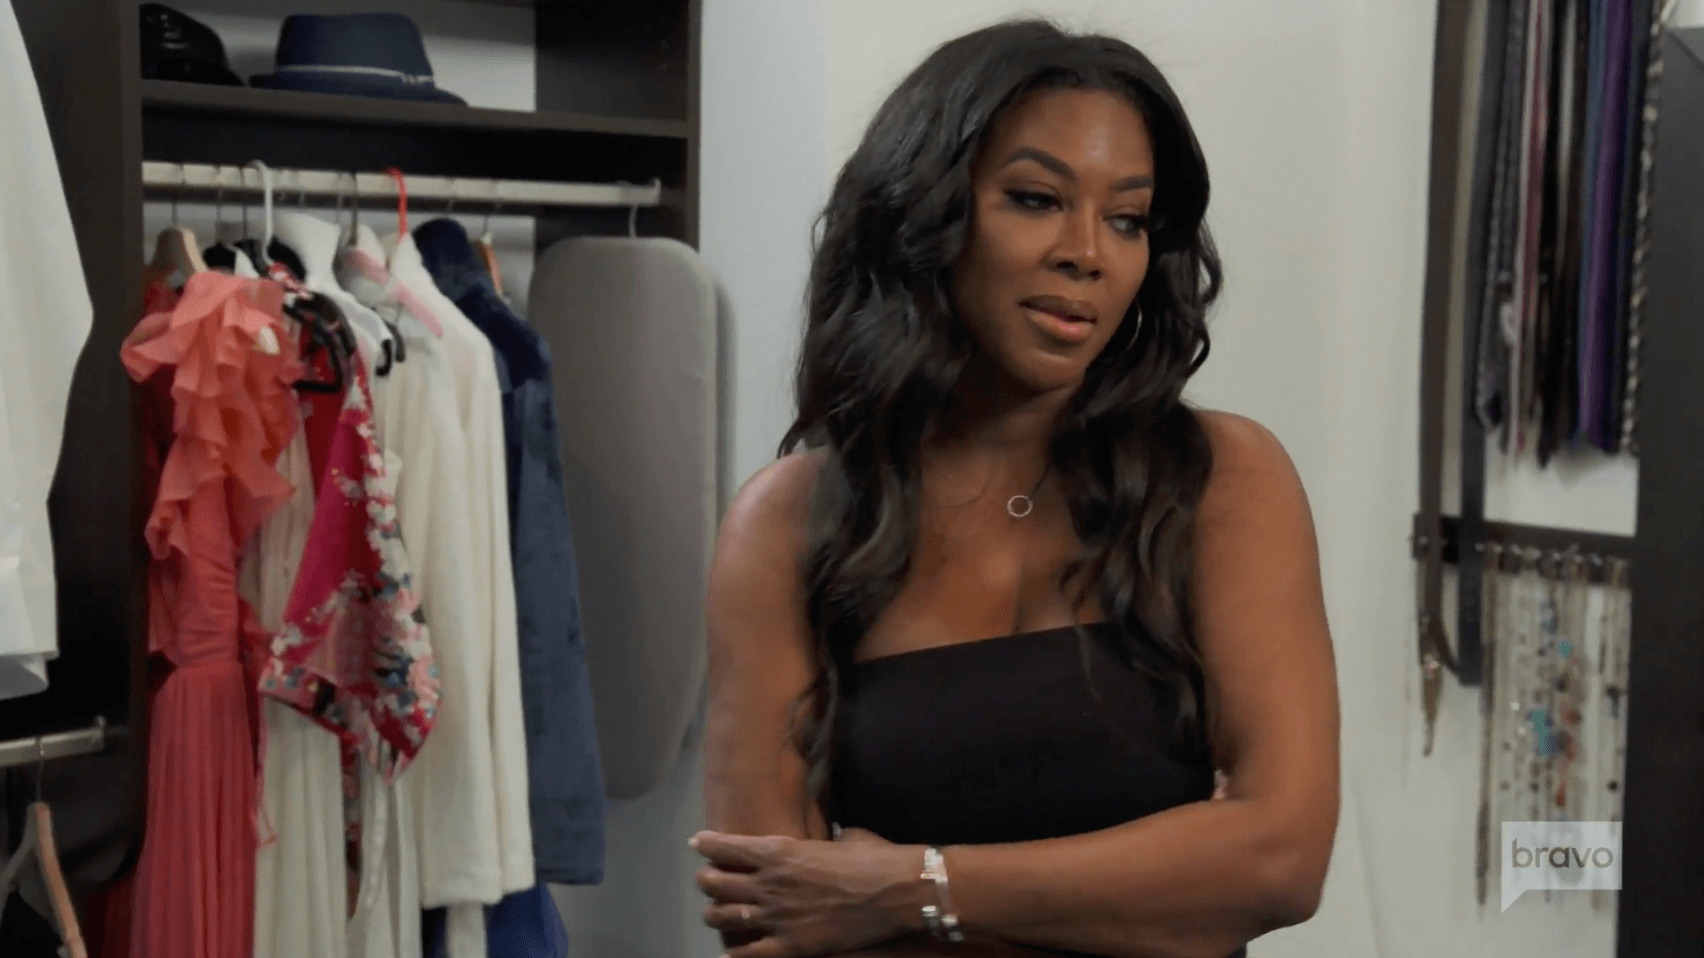 Twitter Drags Kenya Moore For Faking Marc Daly Closet Scene With